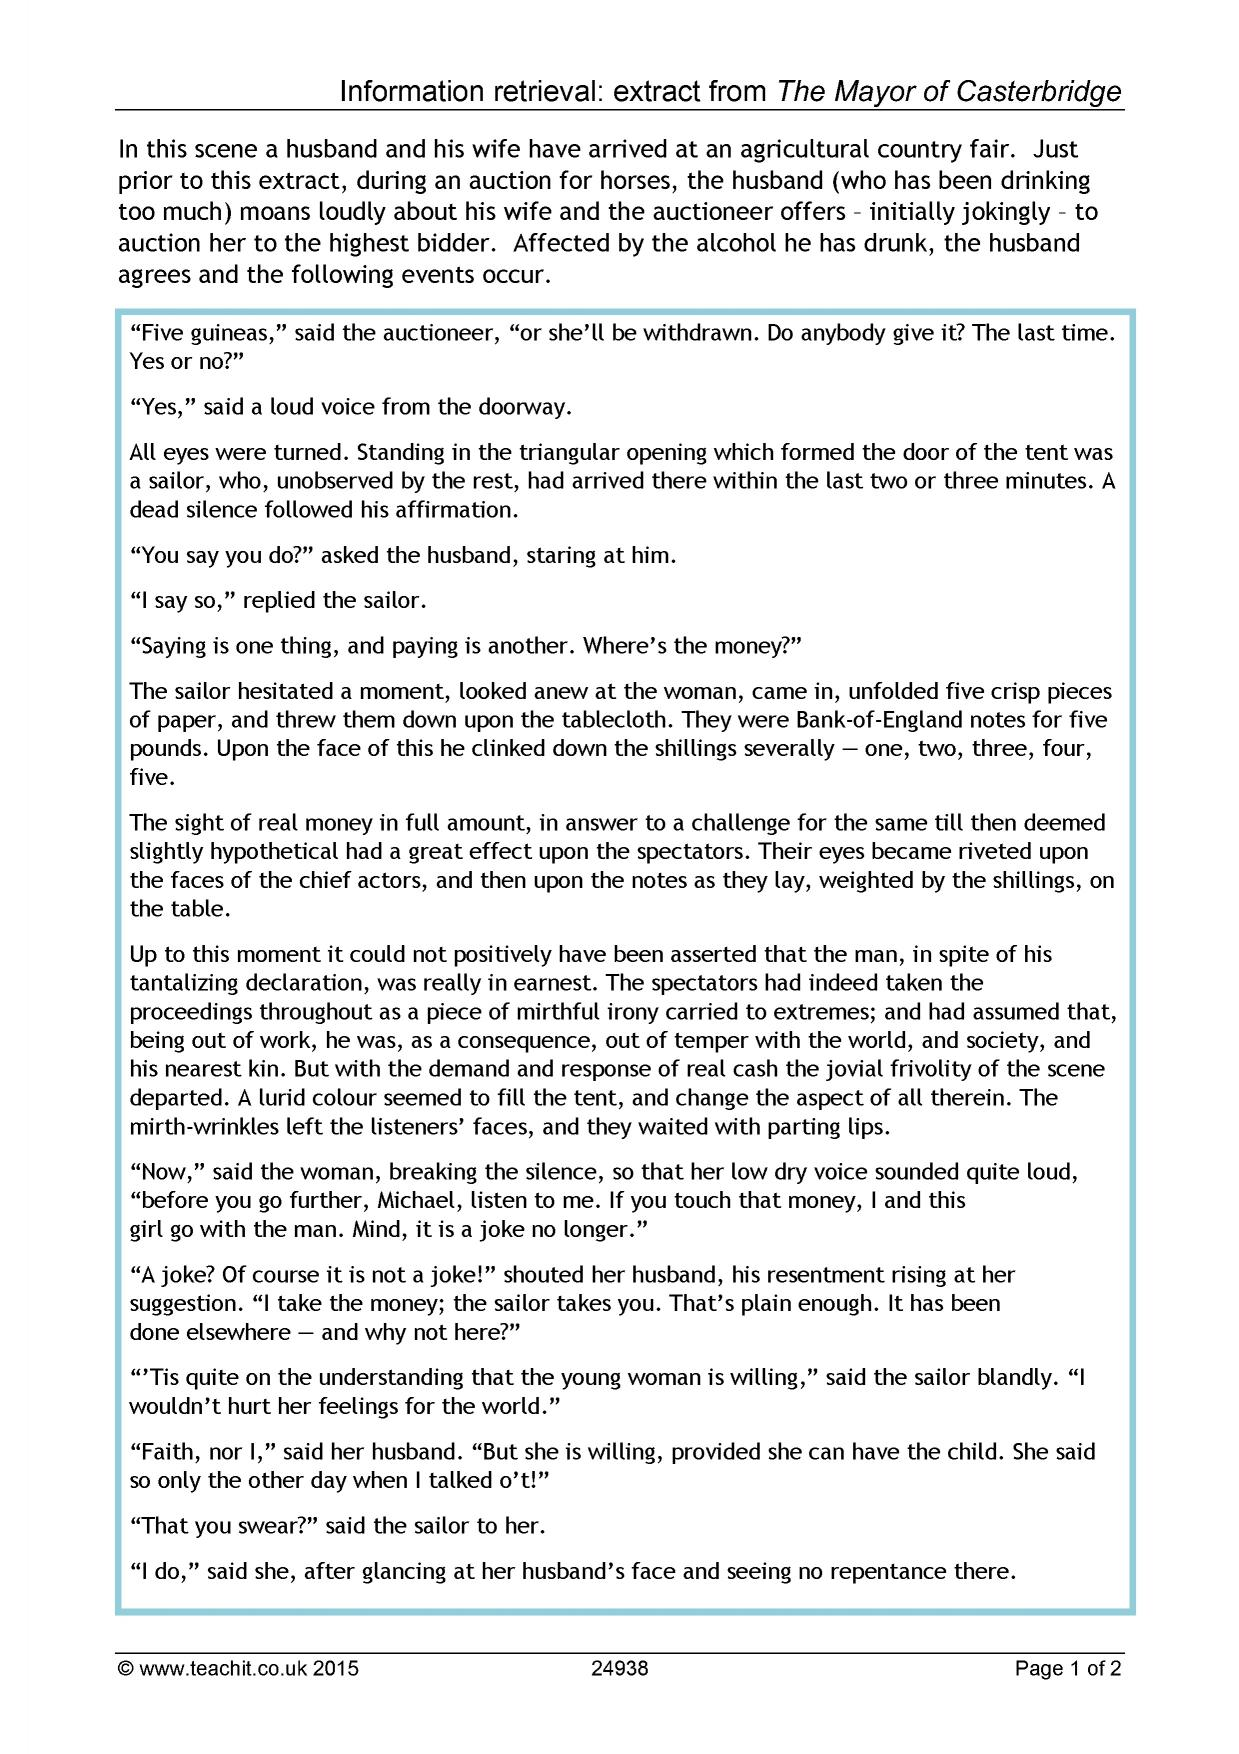 great expectations essay how how 1pip says, i discovered a singular affinity between seeds and corduroys what is another way of saying the same thing 2 how does the girl who lets pip in at the gate of miss havisham's treat pip 3 how do pip and estella entertain miss havisham 4 why does pip cry 5 what does pip.